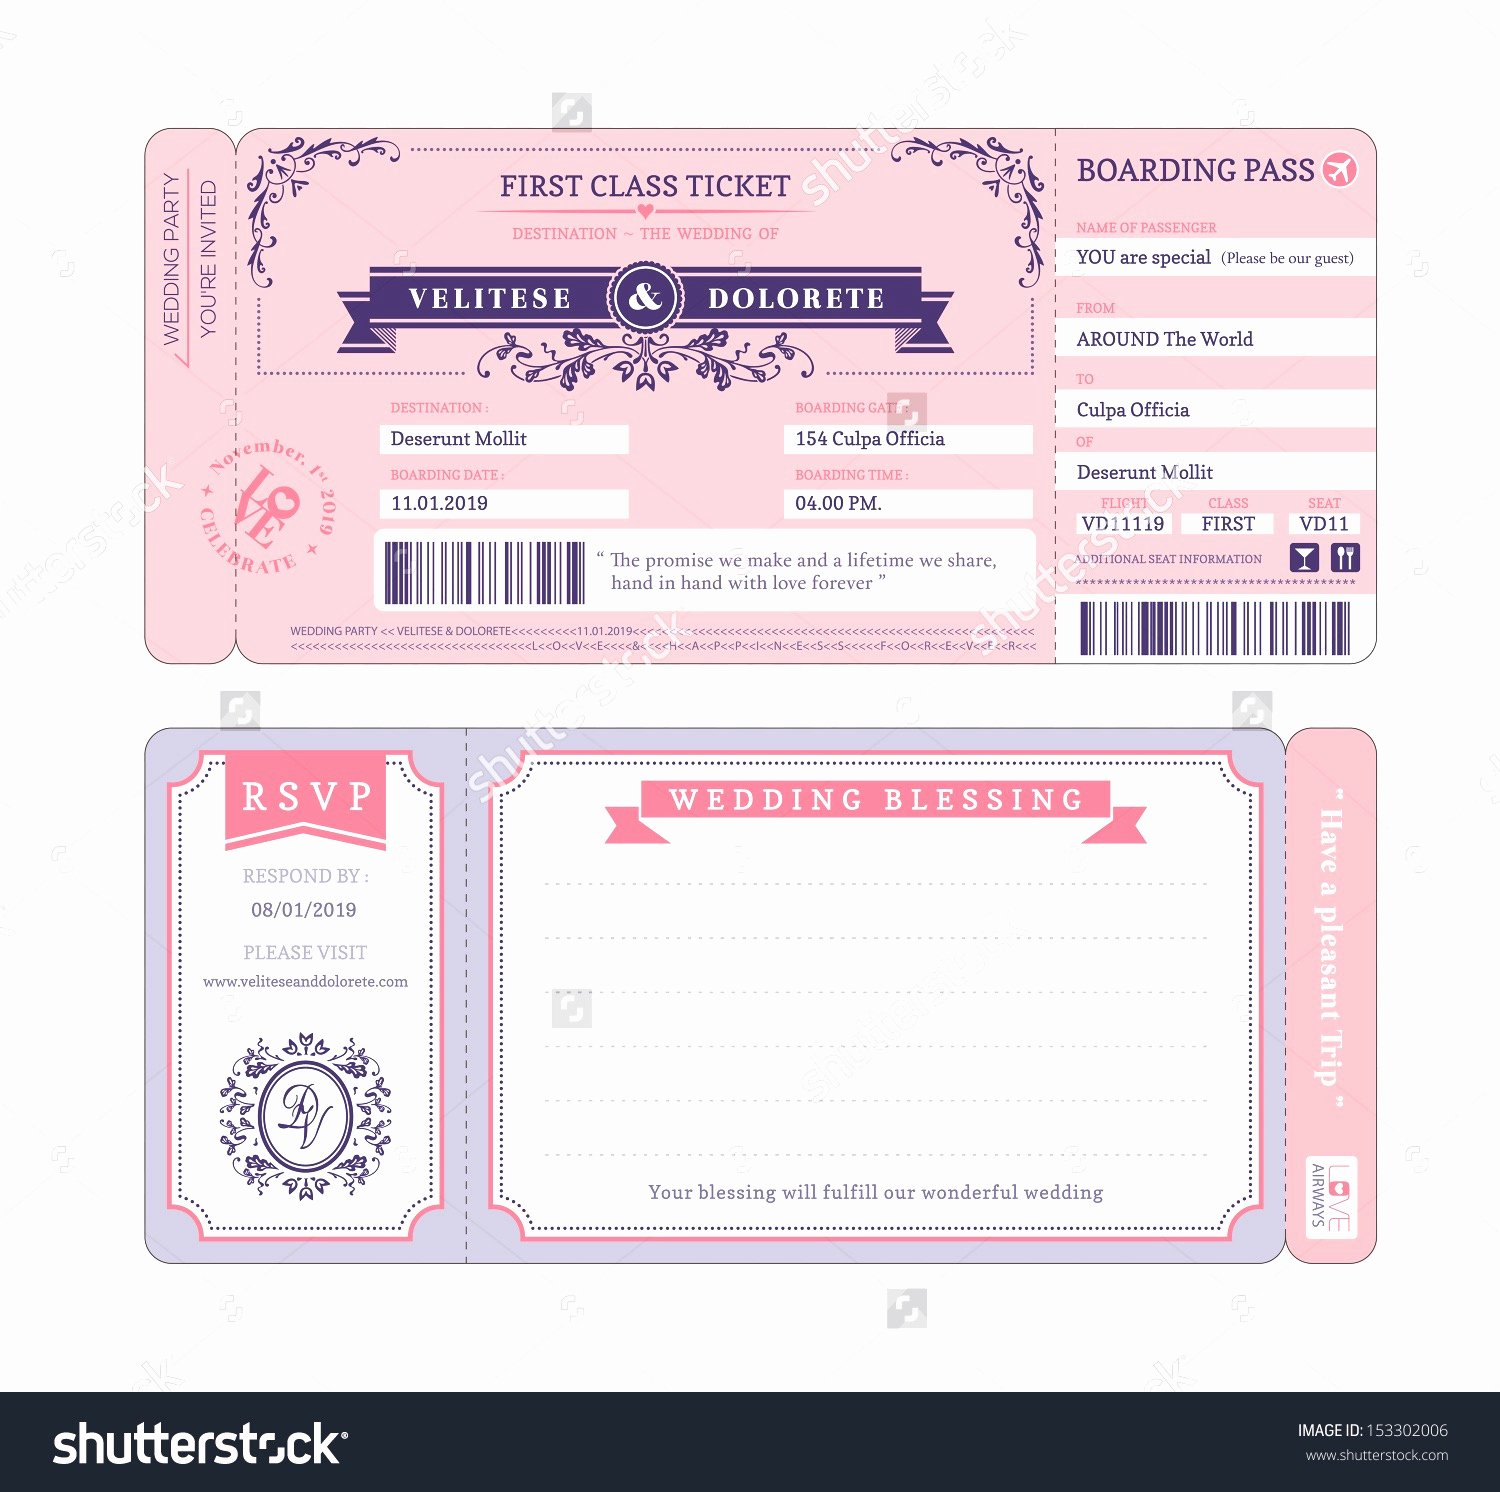 Boarding Pass Template Photoshop Beautiful Airline Ticket Invitation Example Mughals